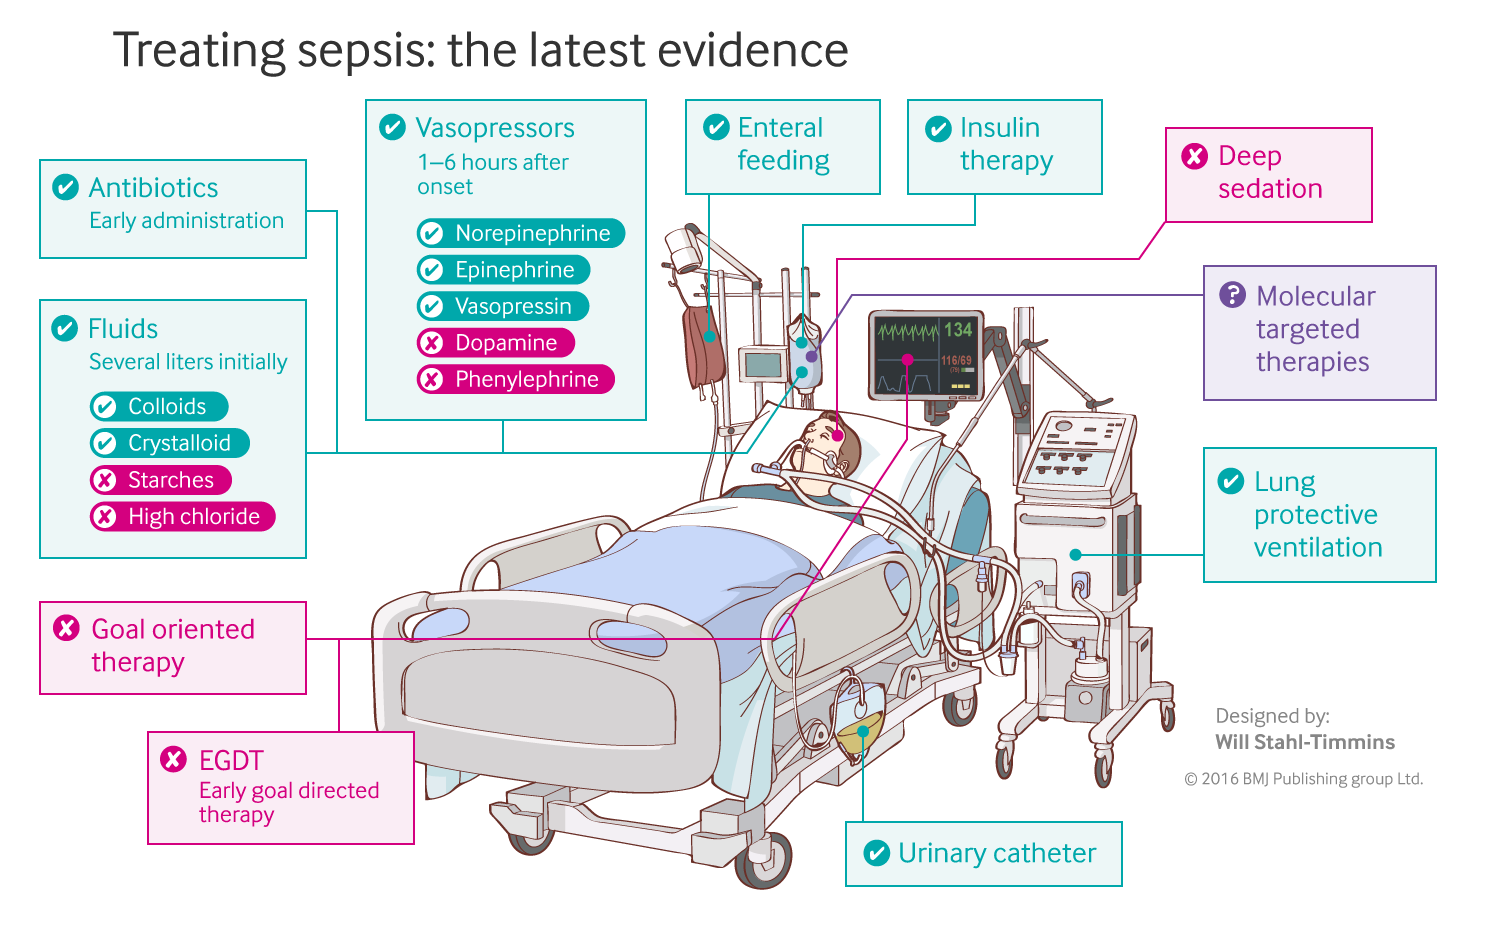 Treating sepsis: the latest evidence